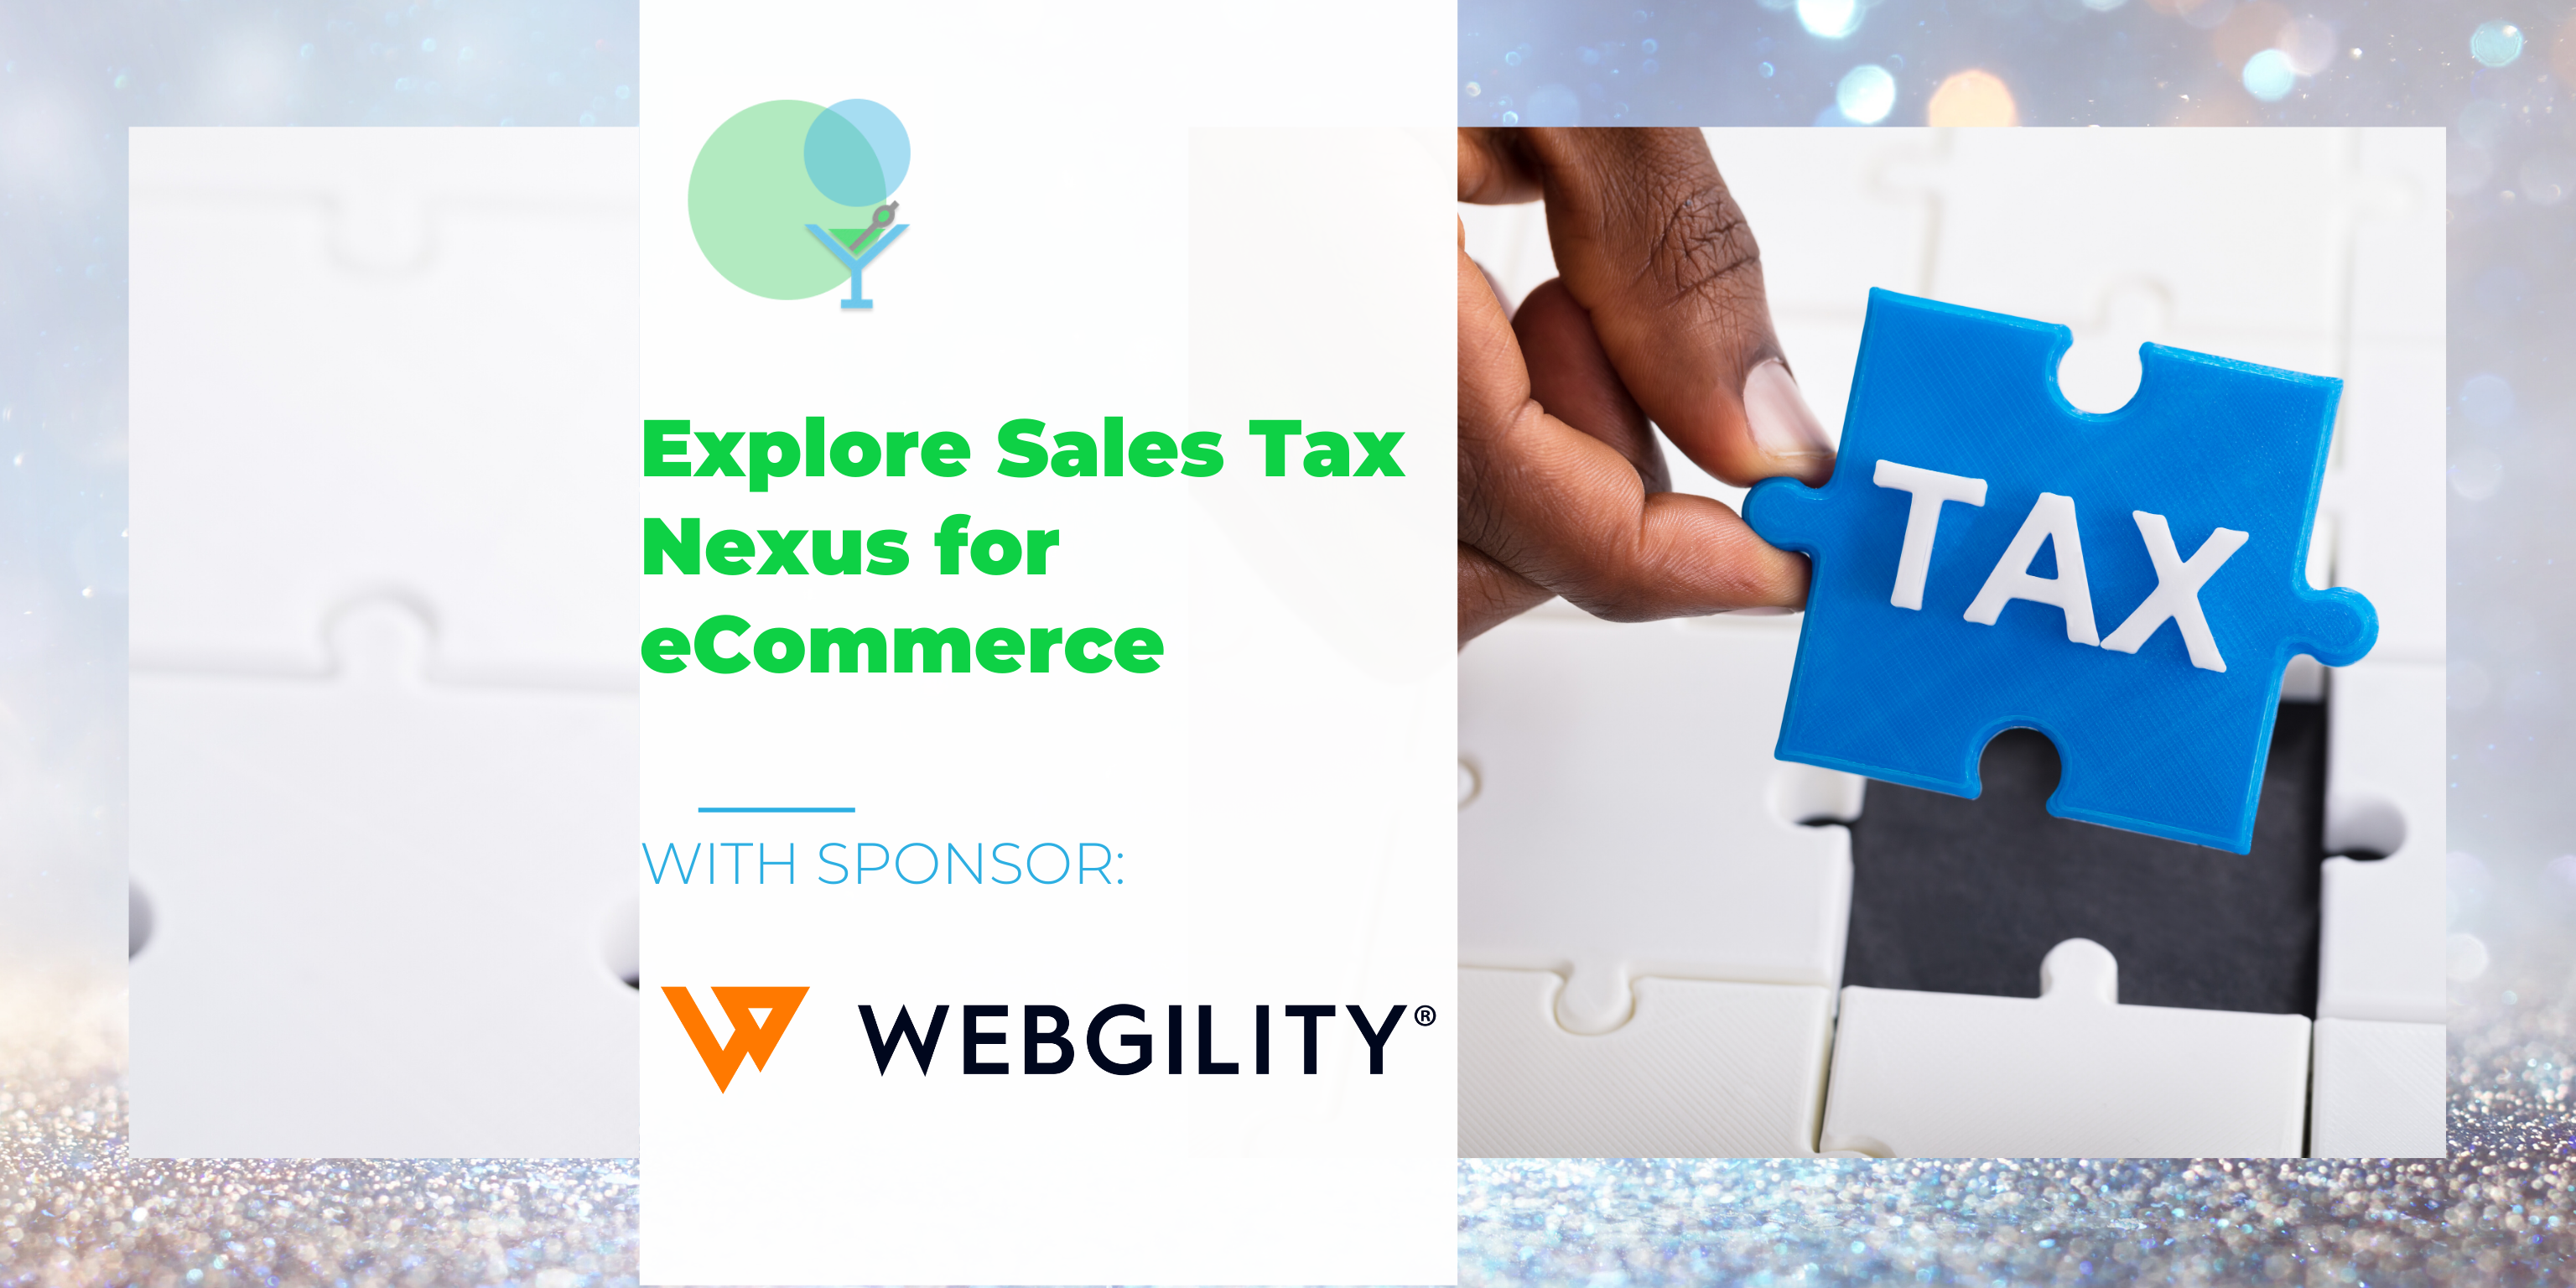 Explore Sales Tax Nexus for eCommerce Businesses with Webgility